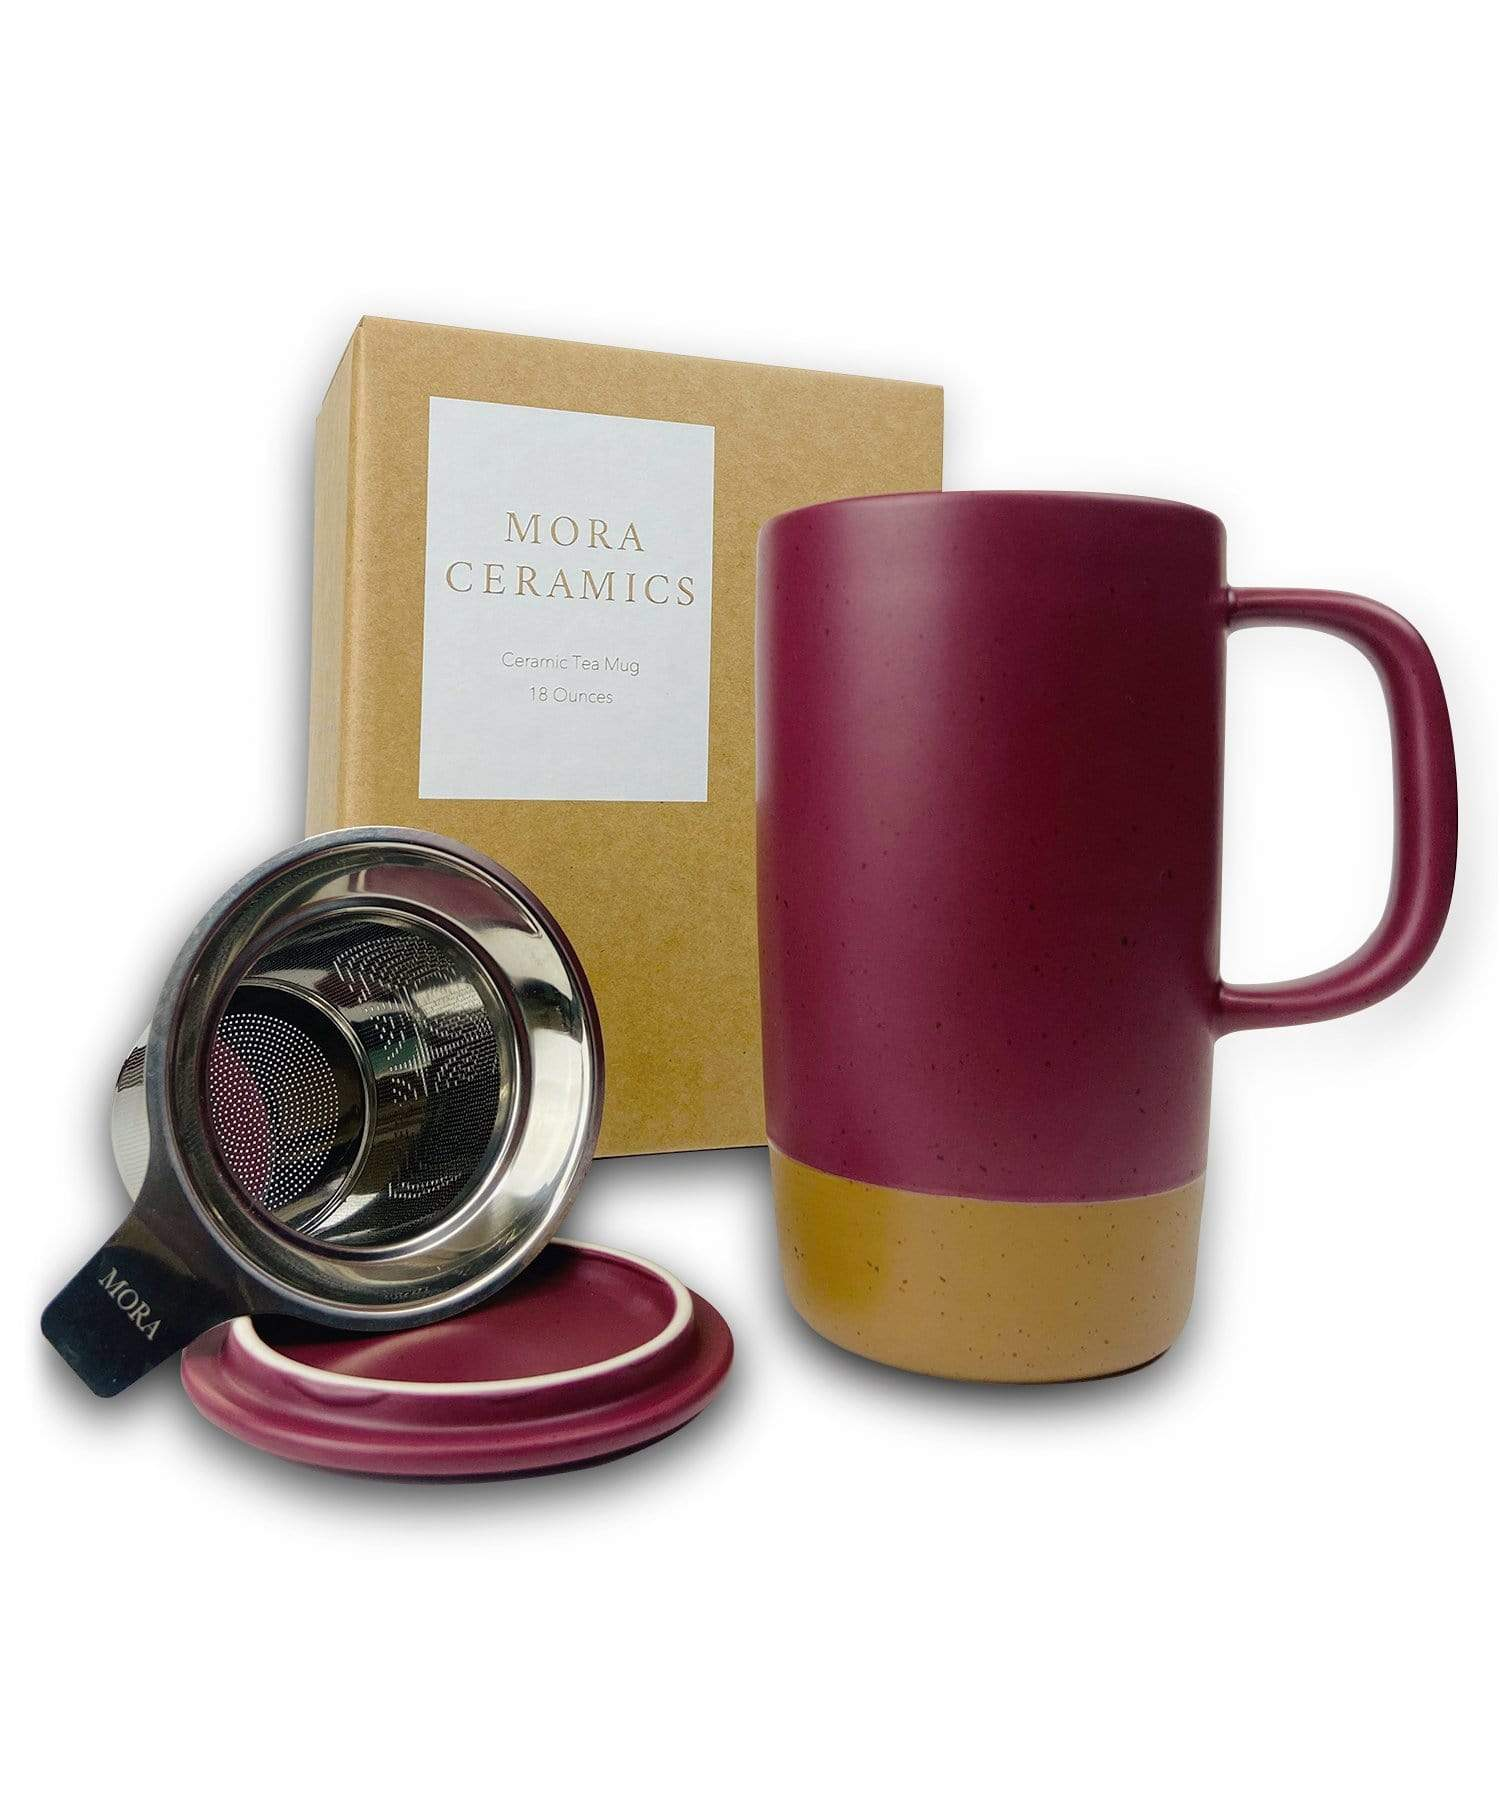 Large Tea mug with infuser and brown clay on the bottom by Mora Ceramics in merlot red maroon